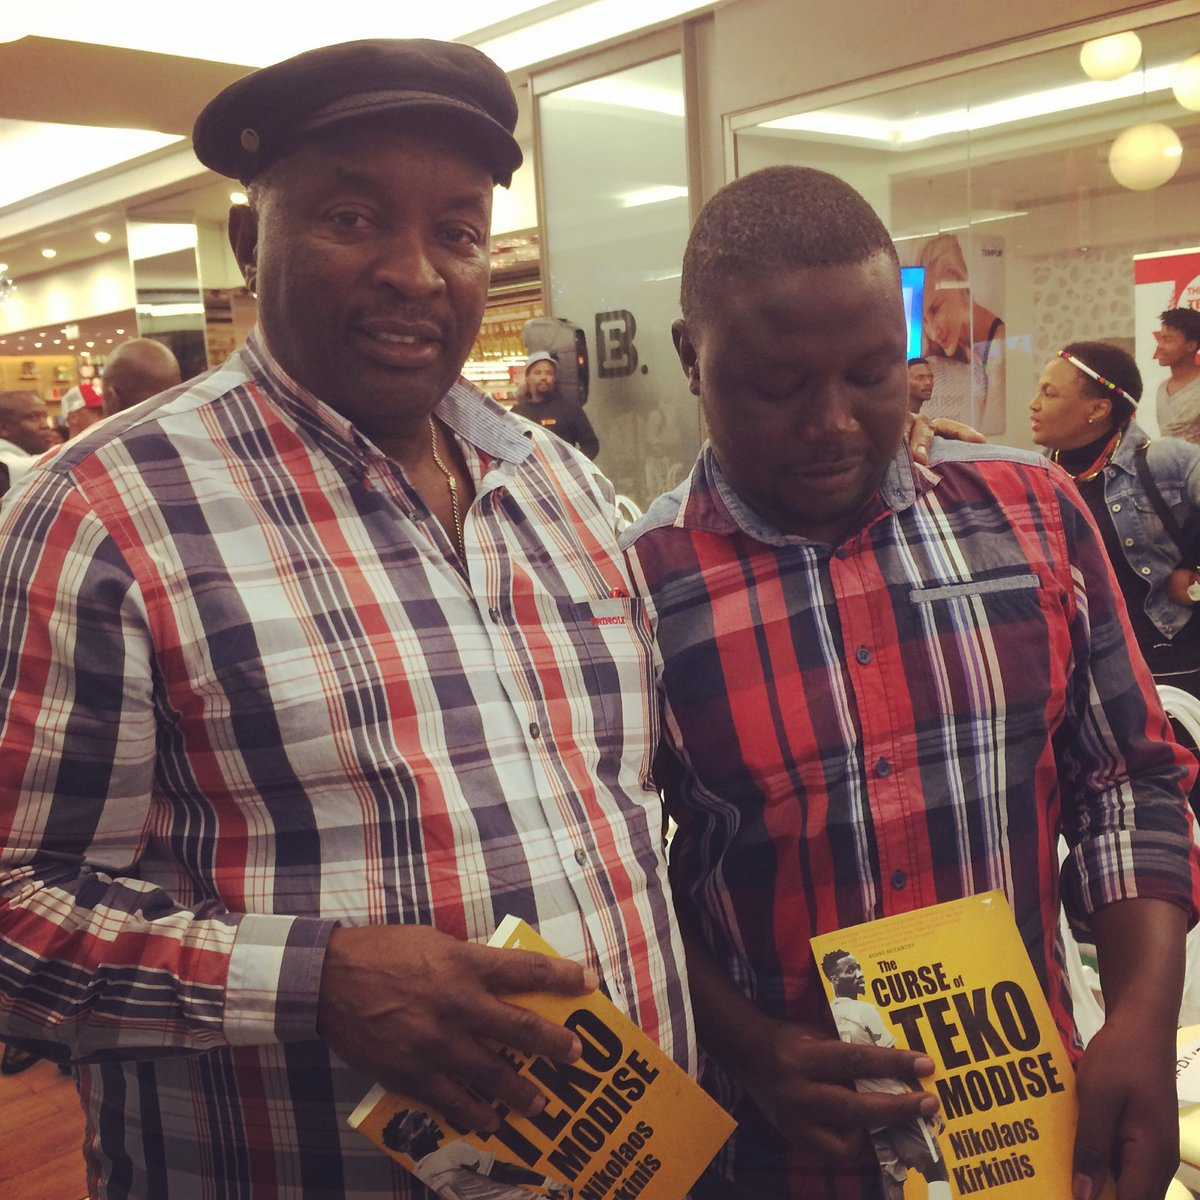 I never watched the great Jomo Sono play I respect the contribution he made in football. Being a Tsonga as well makes me very proud to speak the same language as him.#AskJomo <br>http://pic.twitter.com/ImbJZZJud7